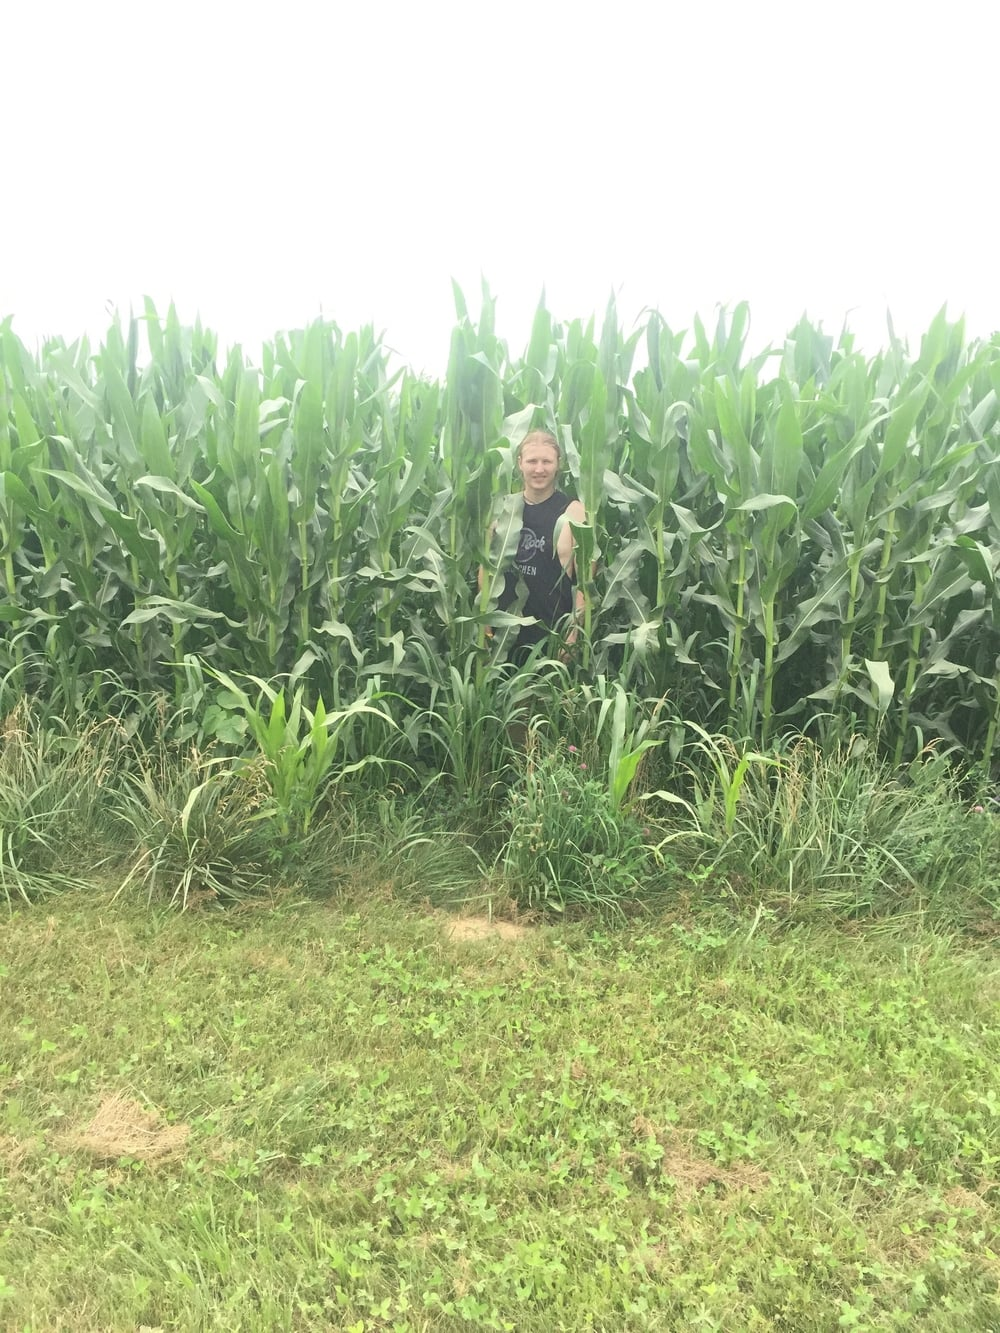 Getting weird in a cornfield. This was after about 10 miles of running. We were both kind of loopy.